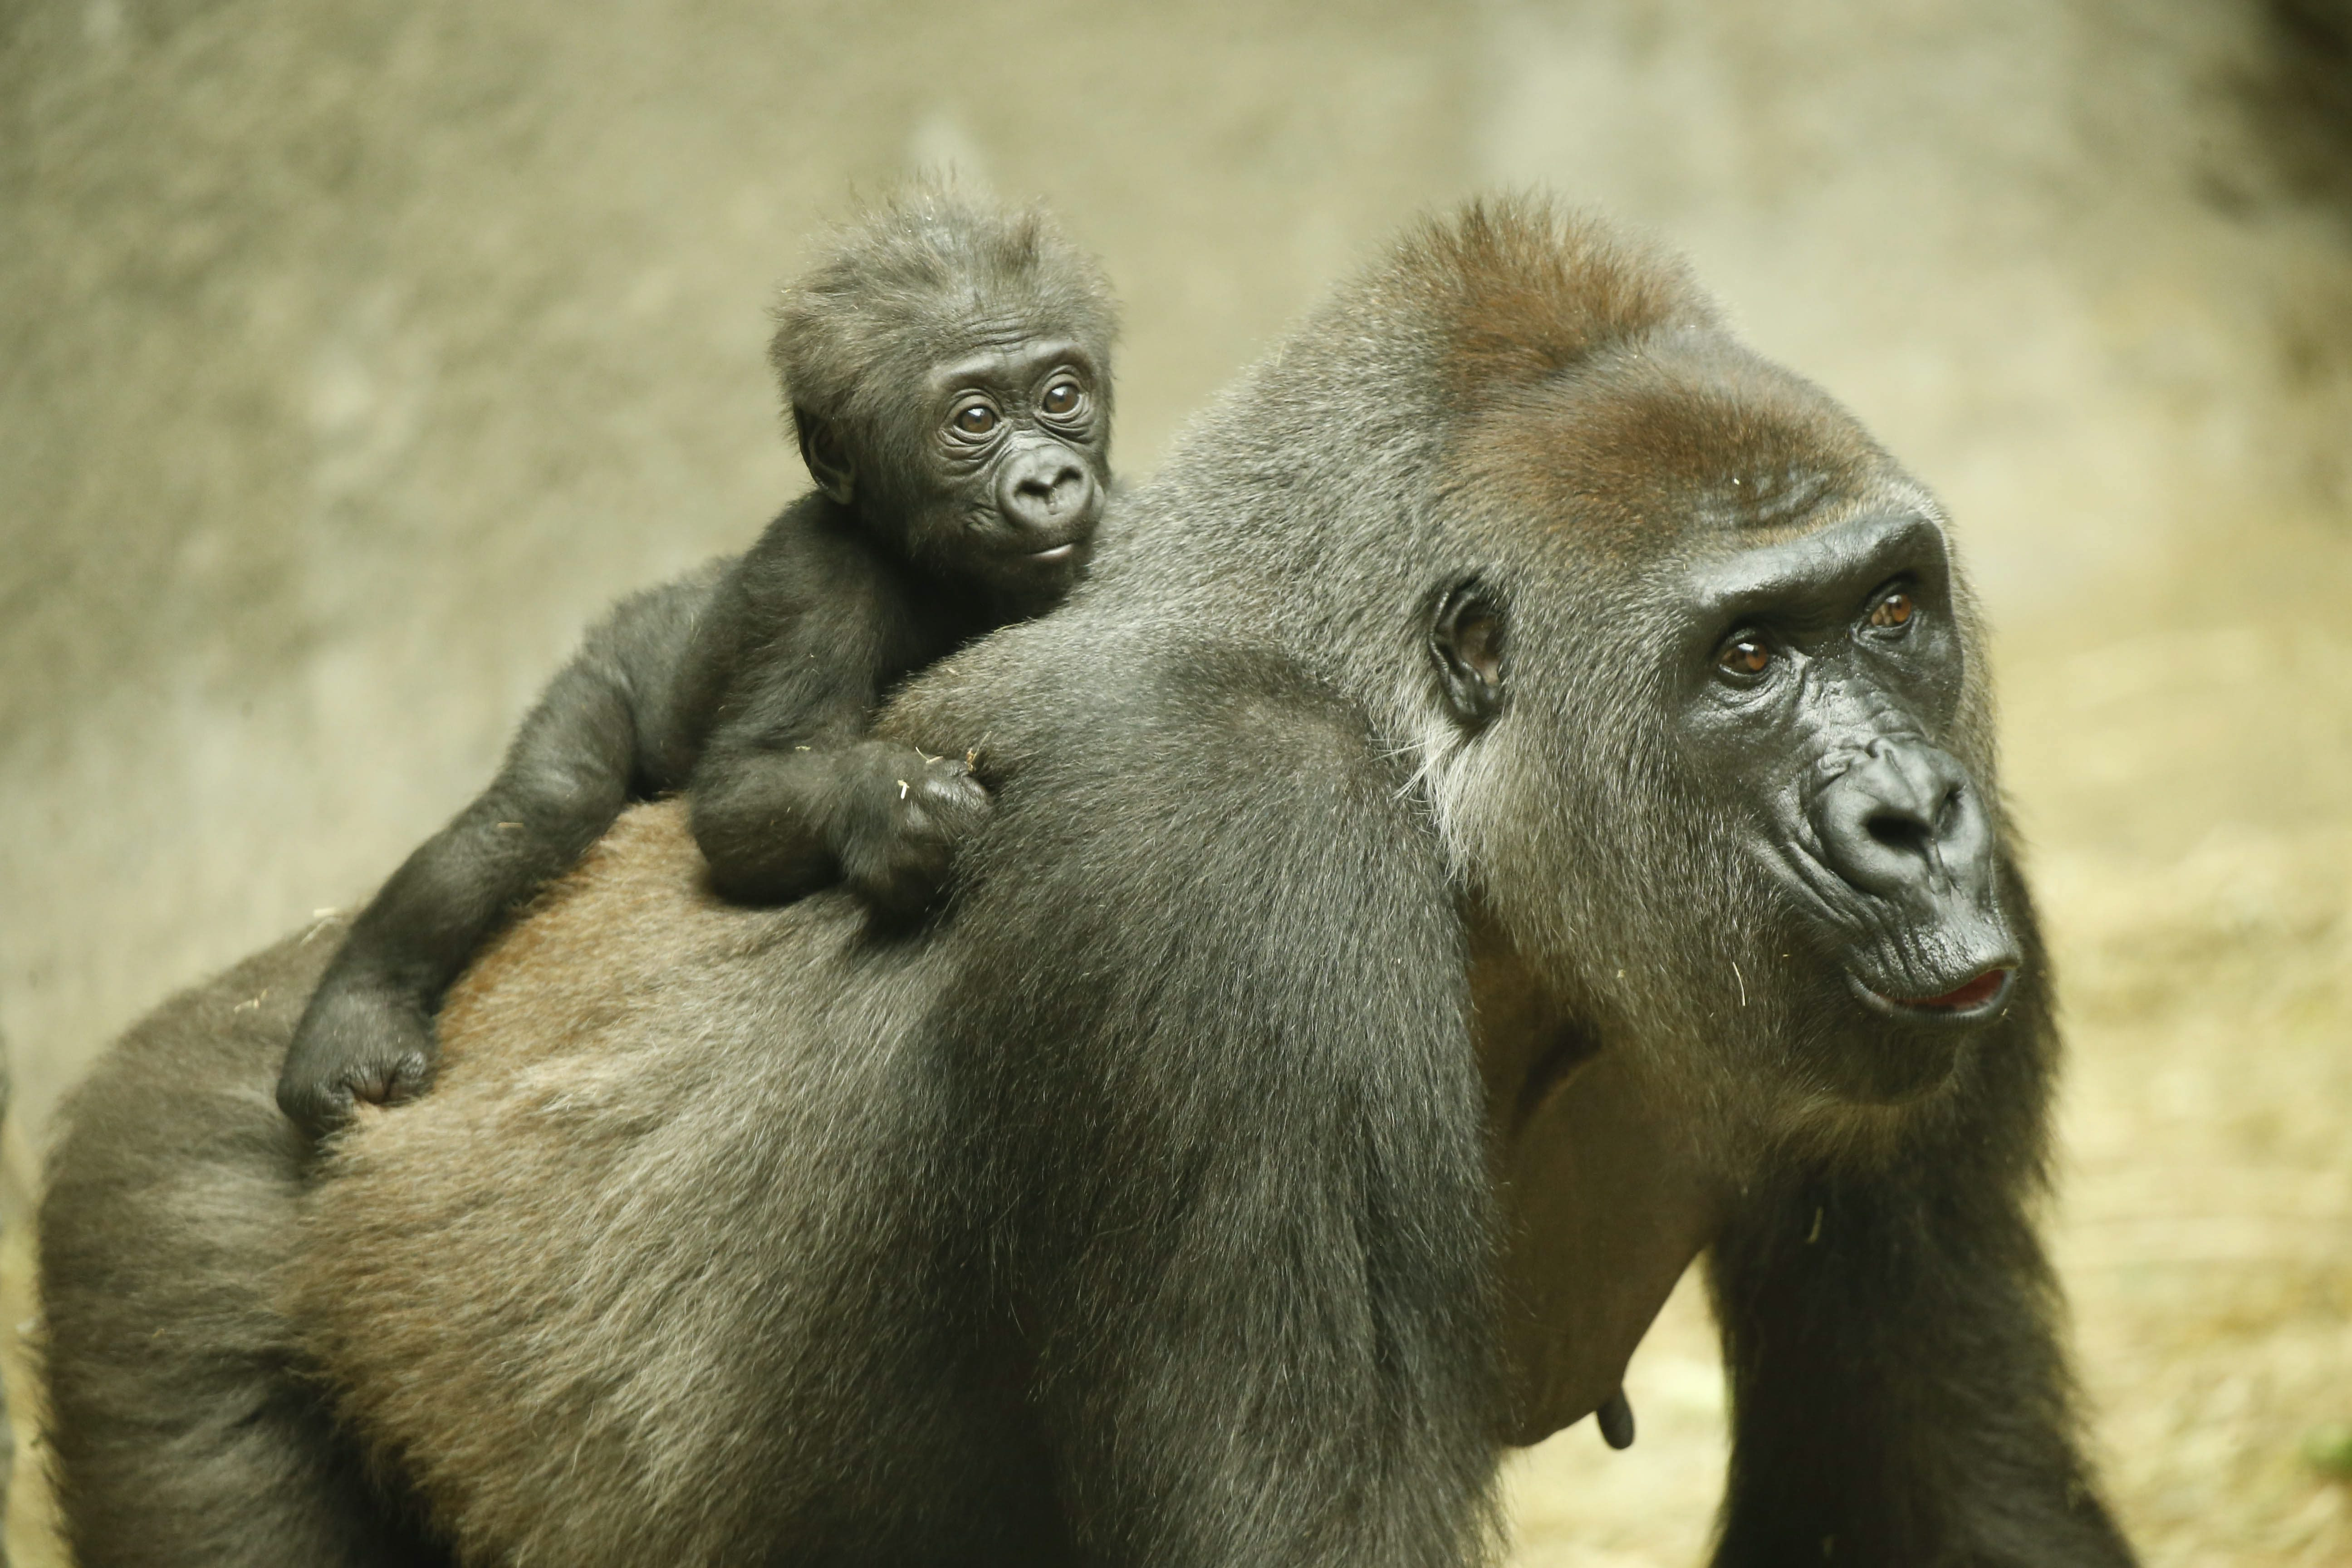 Kayin, a baby gorilla born on Jan. 10, clings to the back of his mother, Sidney, in the gorilla house at the Buffalo Zoo, Friday, May 6, 2016.  (Derek Gee/Buffalo News)